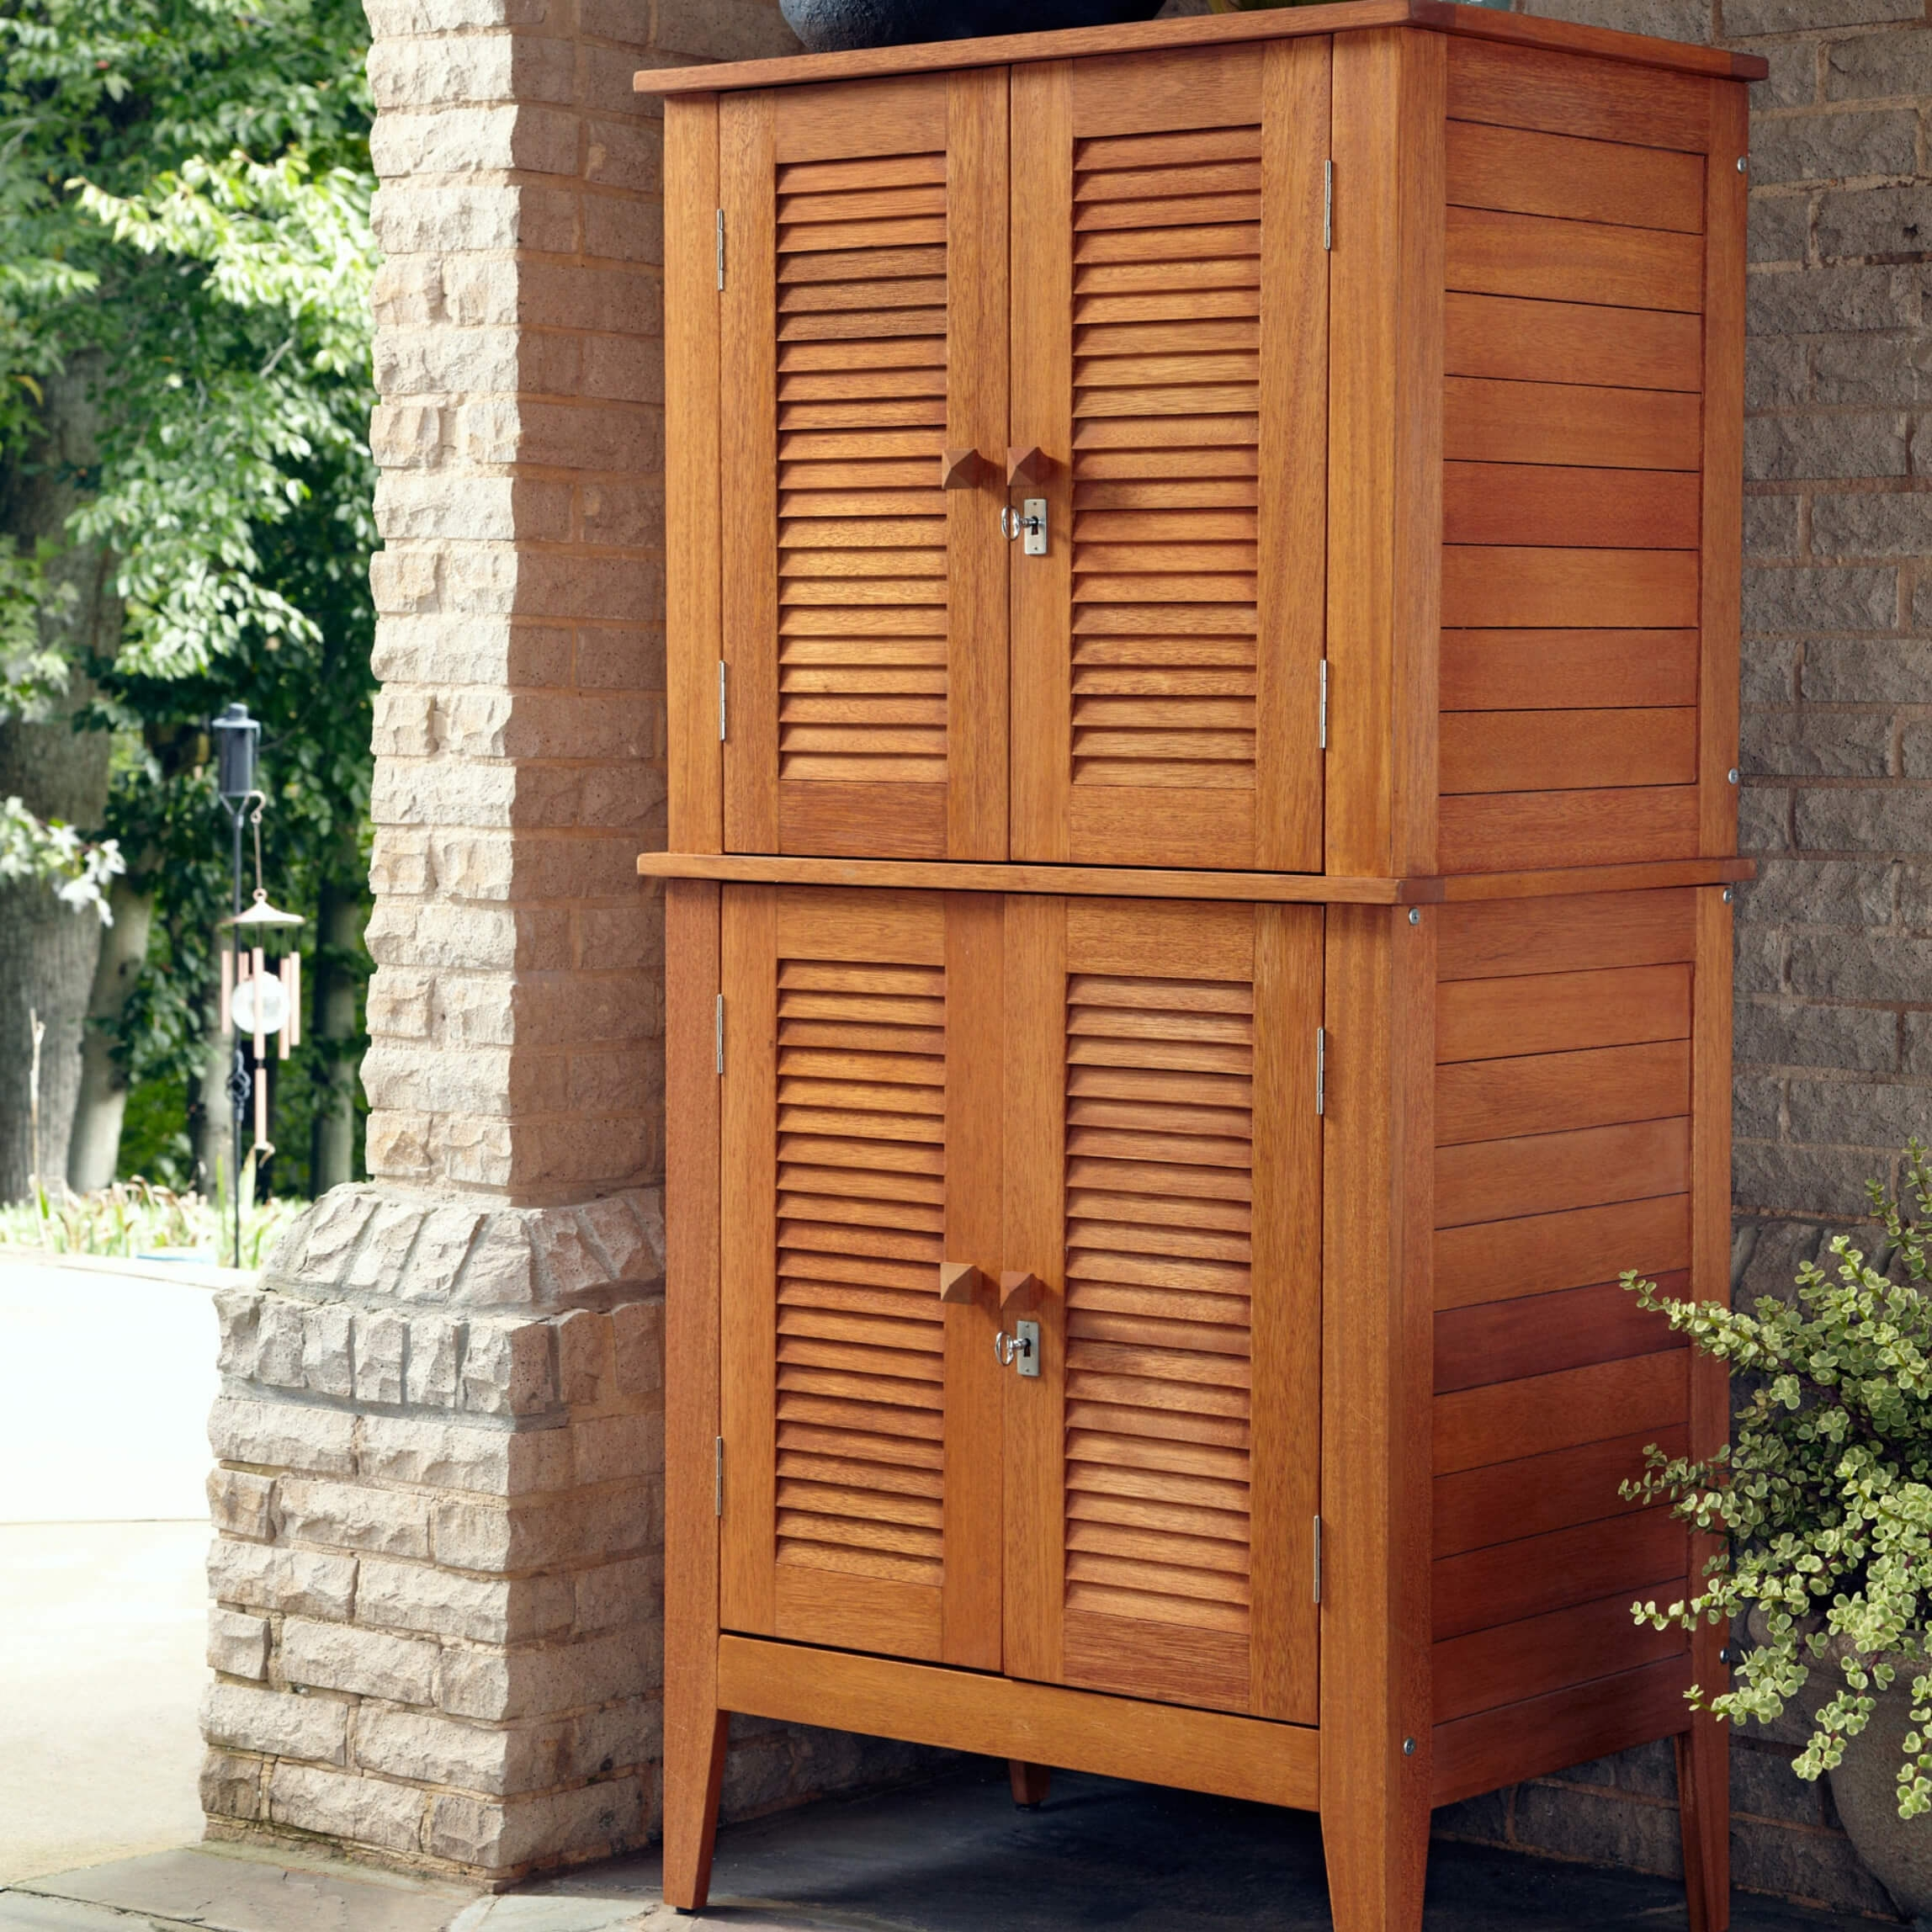 Upright Wood Storage Cabinet